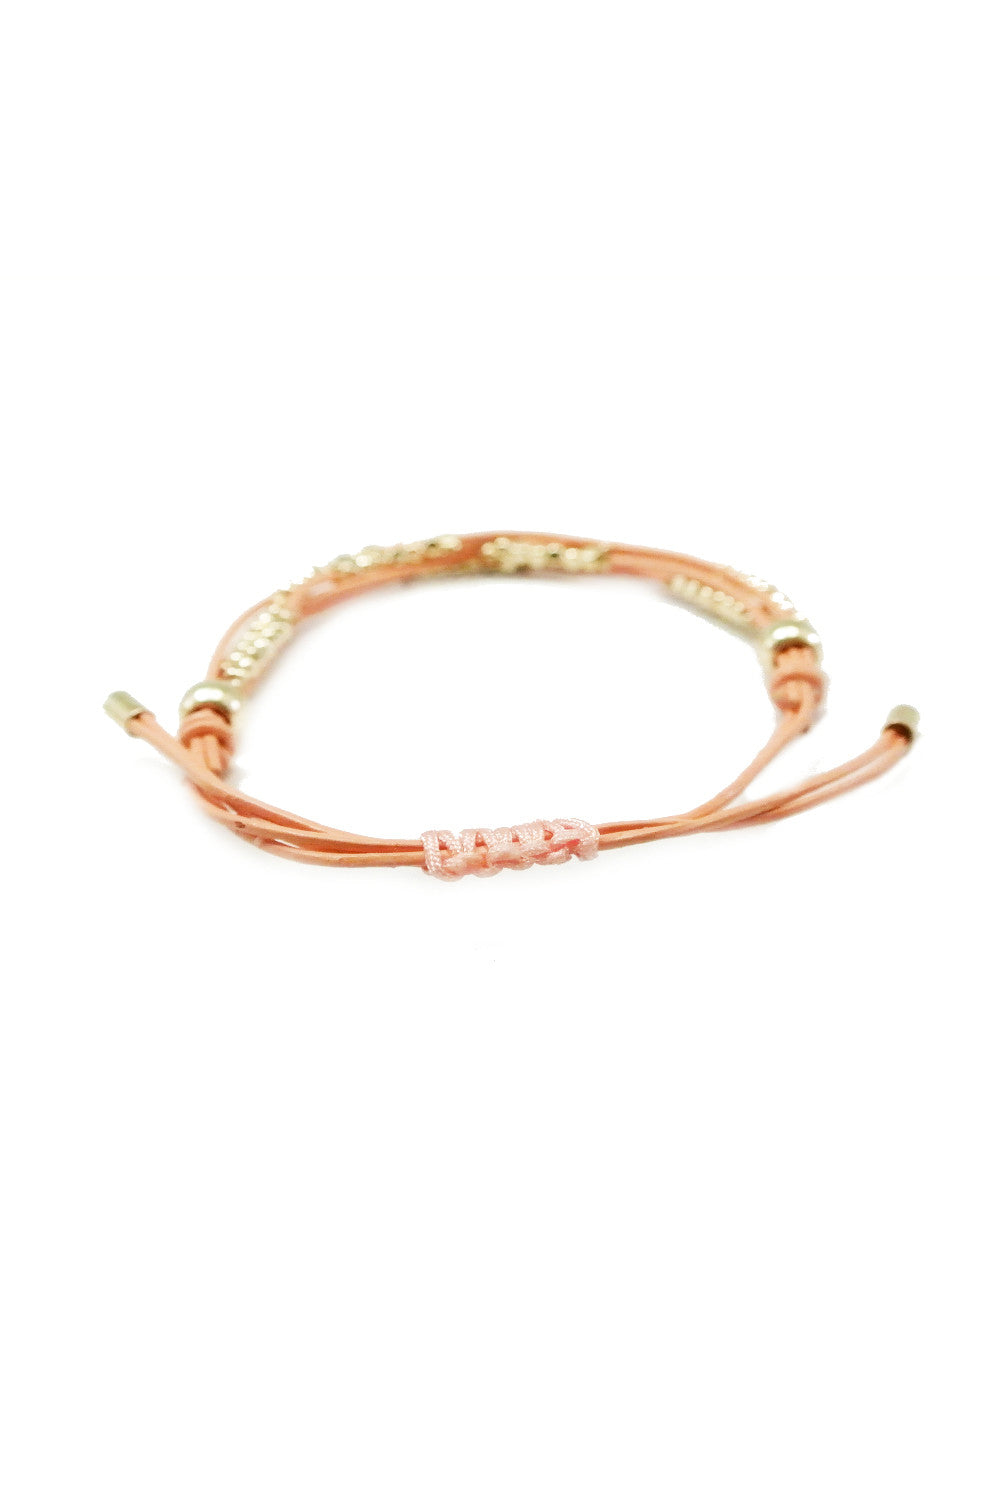 Dakota Leather Beaded Bracelet - Peach